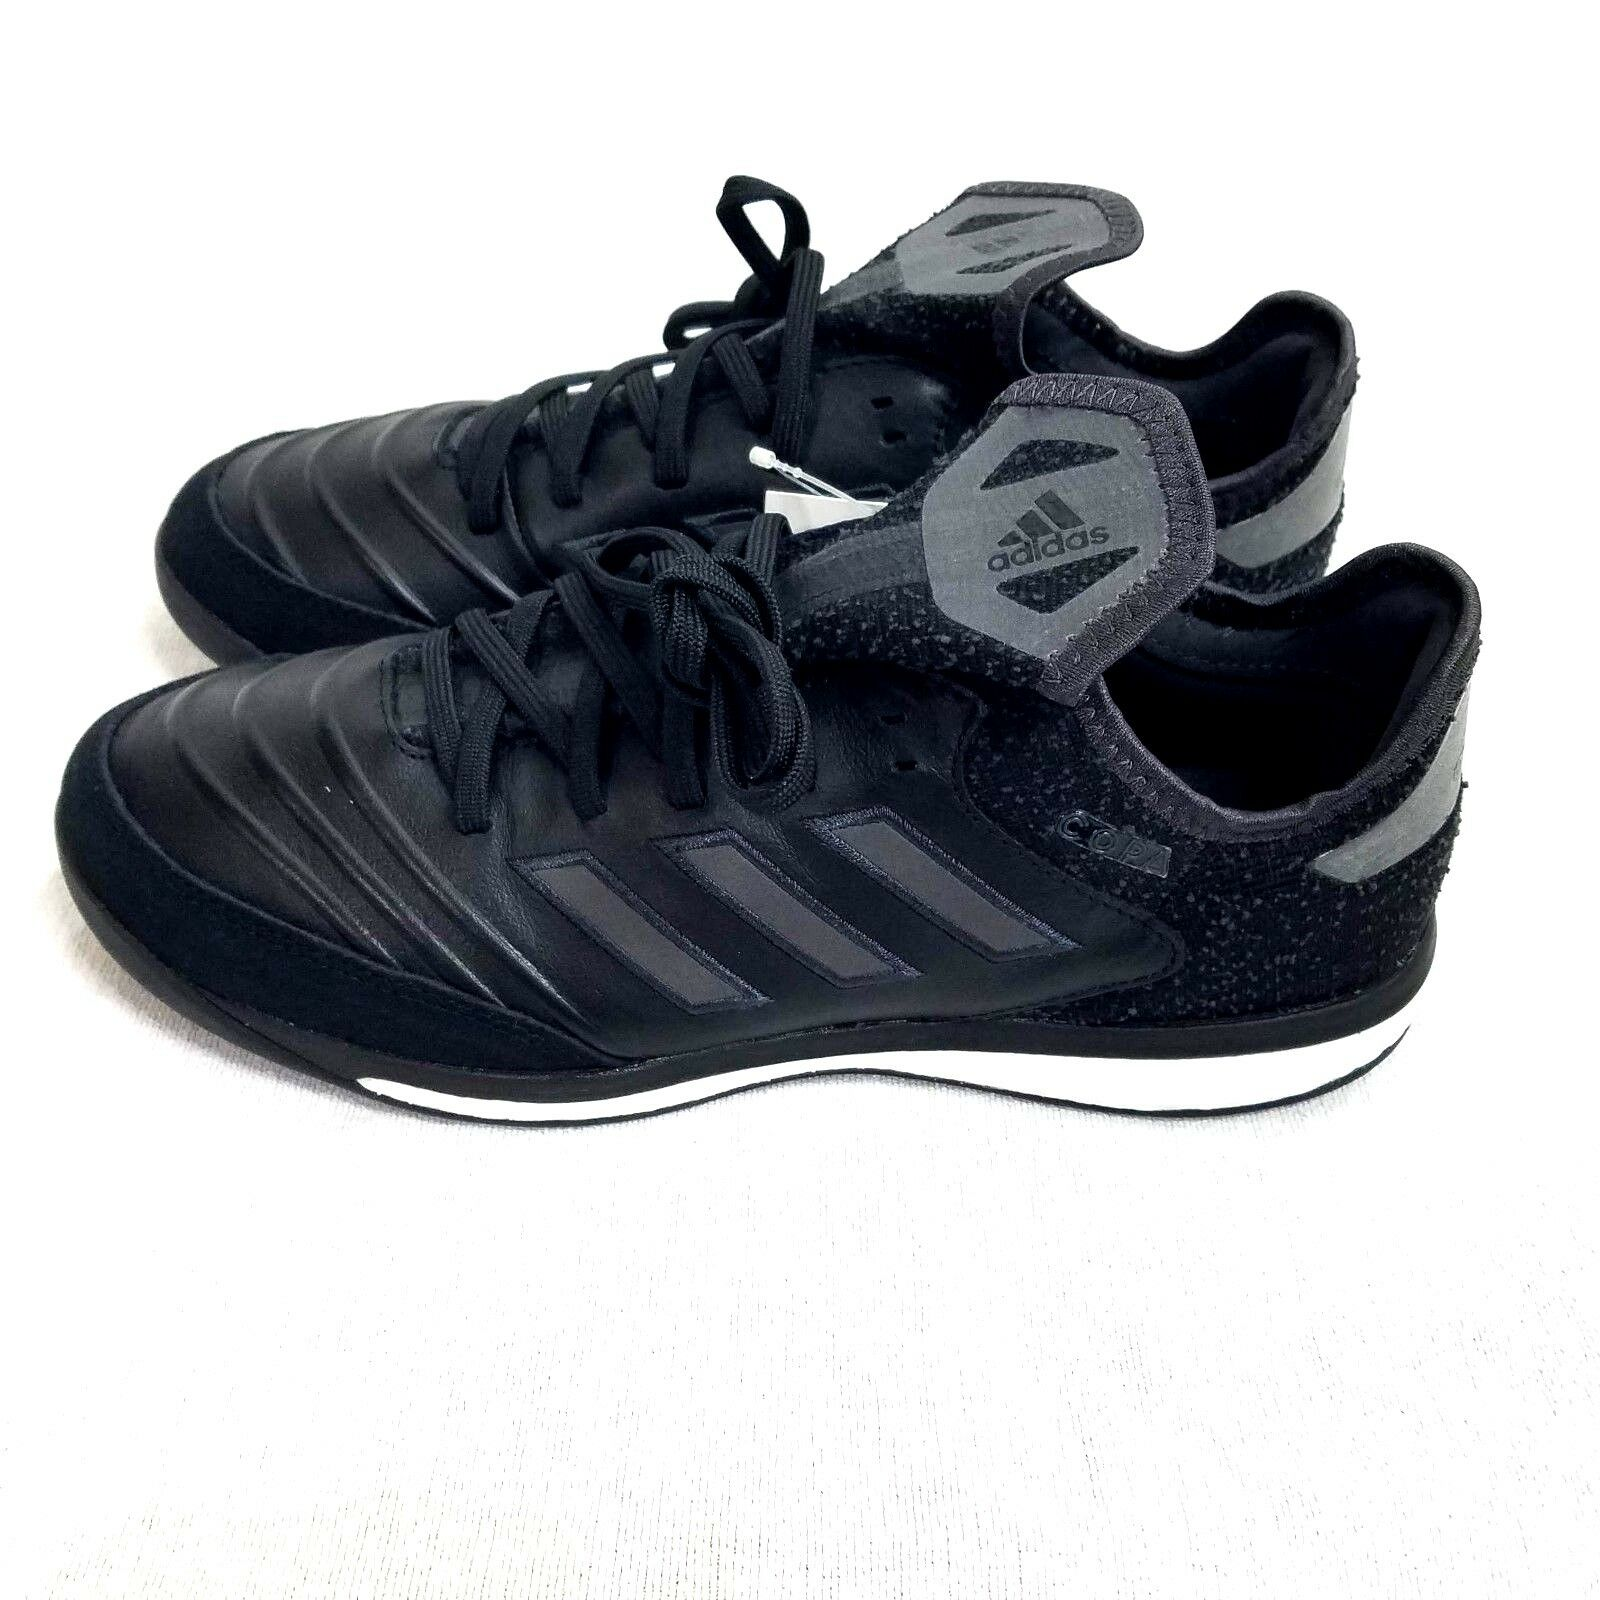 Men's Adidas Black COPATango 18.1 Trainer Soccer shoes Boost Size11 New